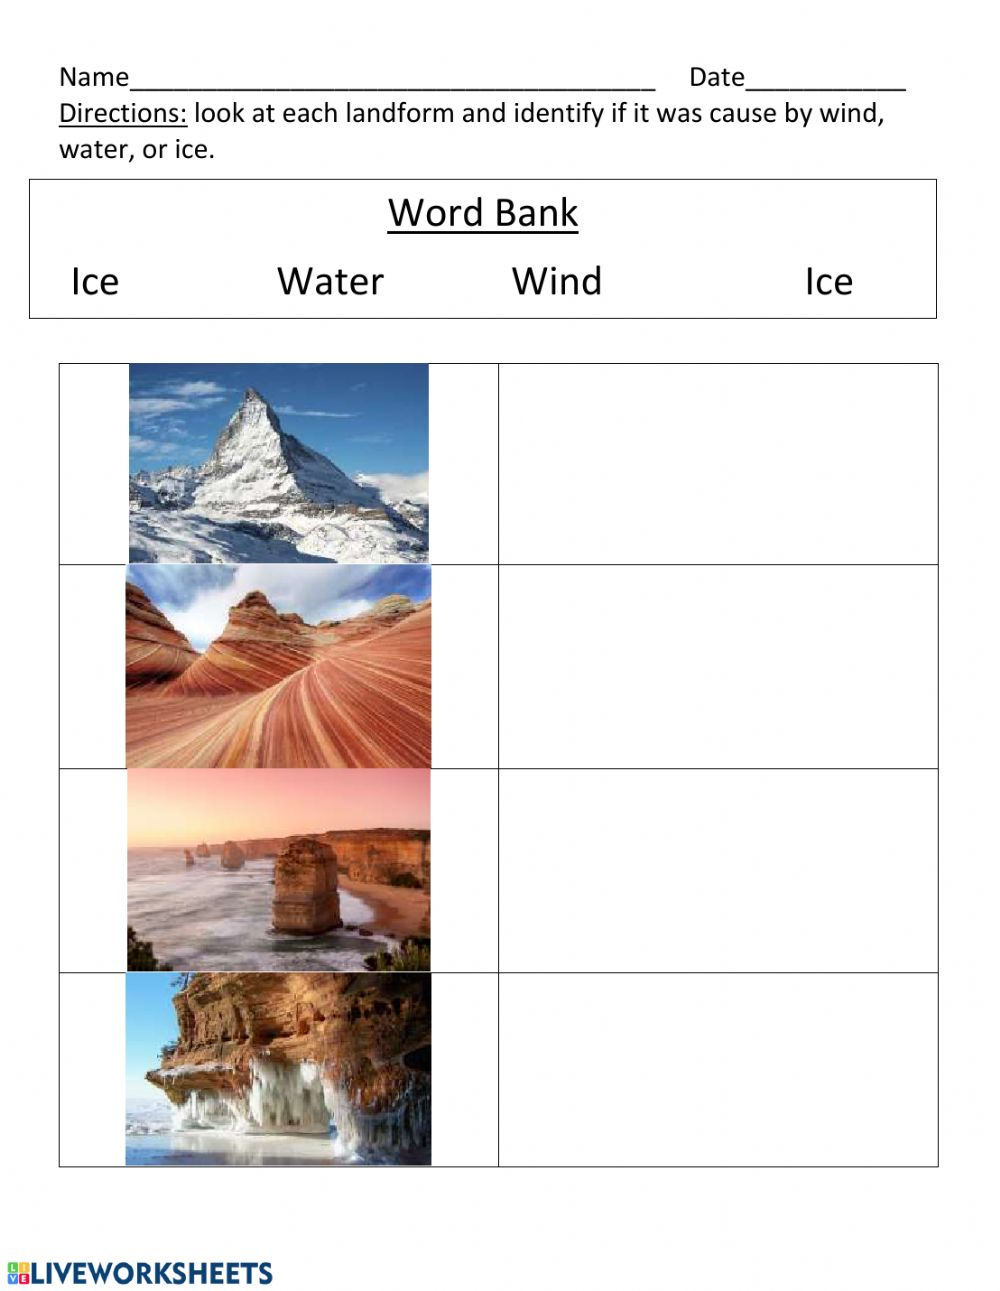 Ice,wind, water landforms worksheet